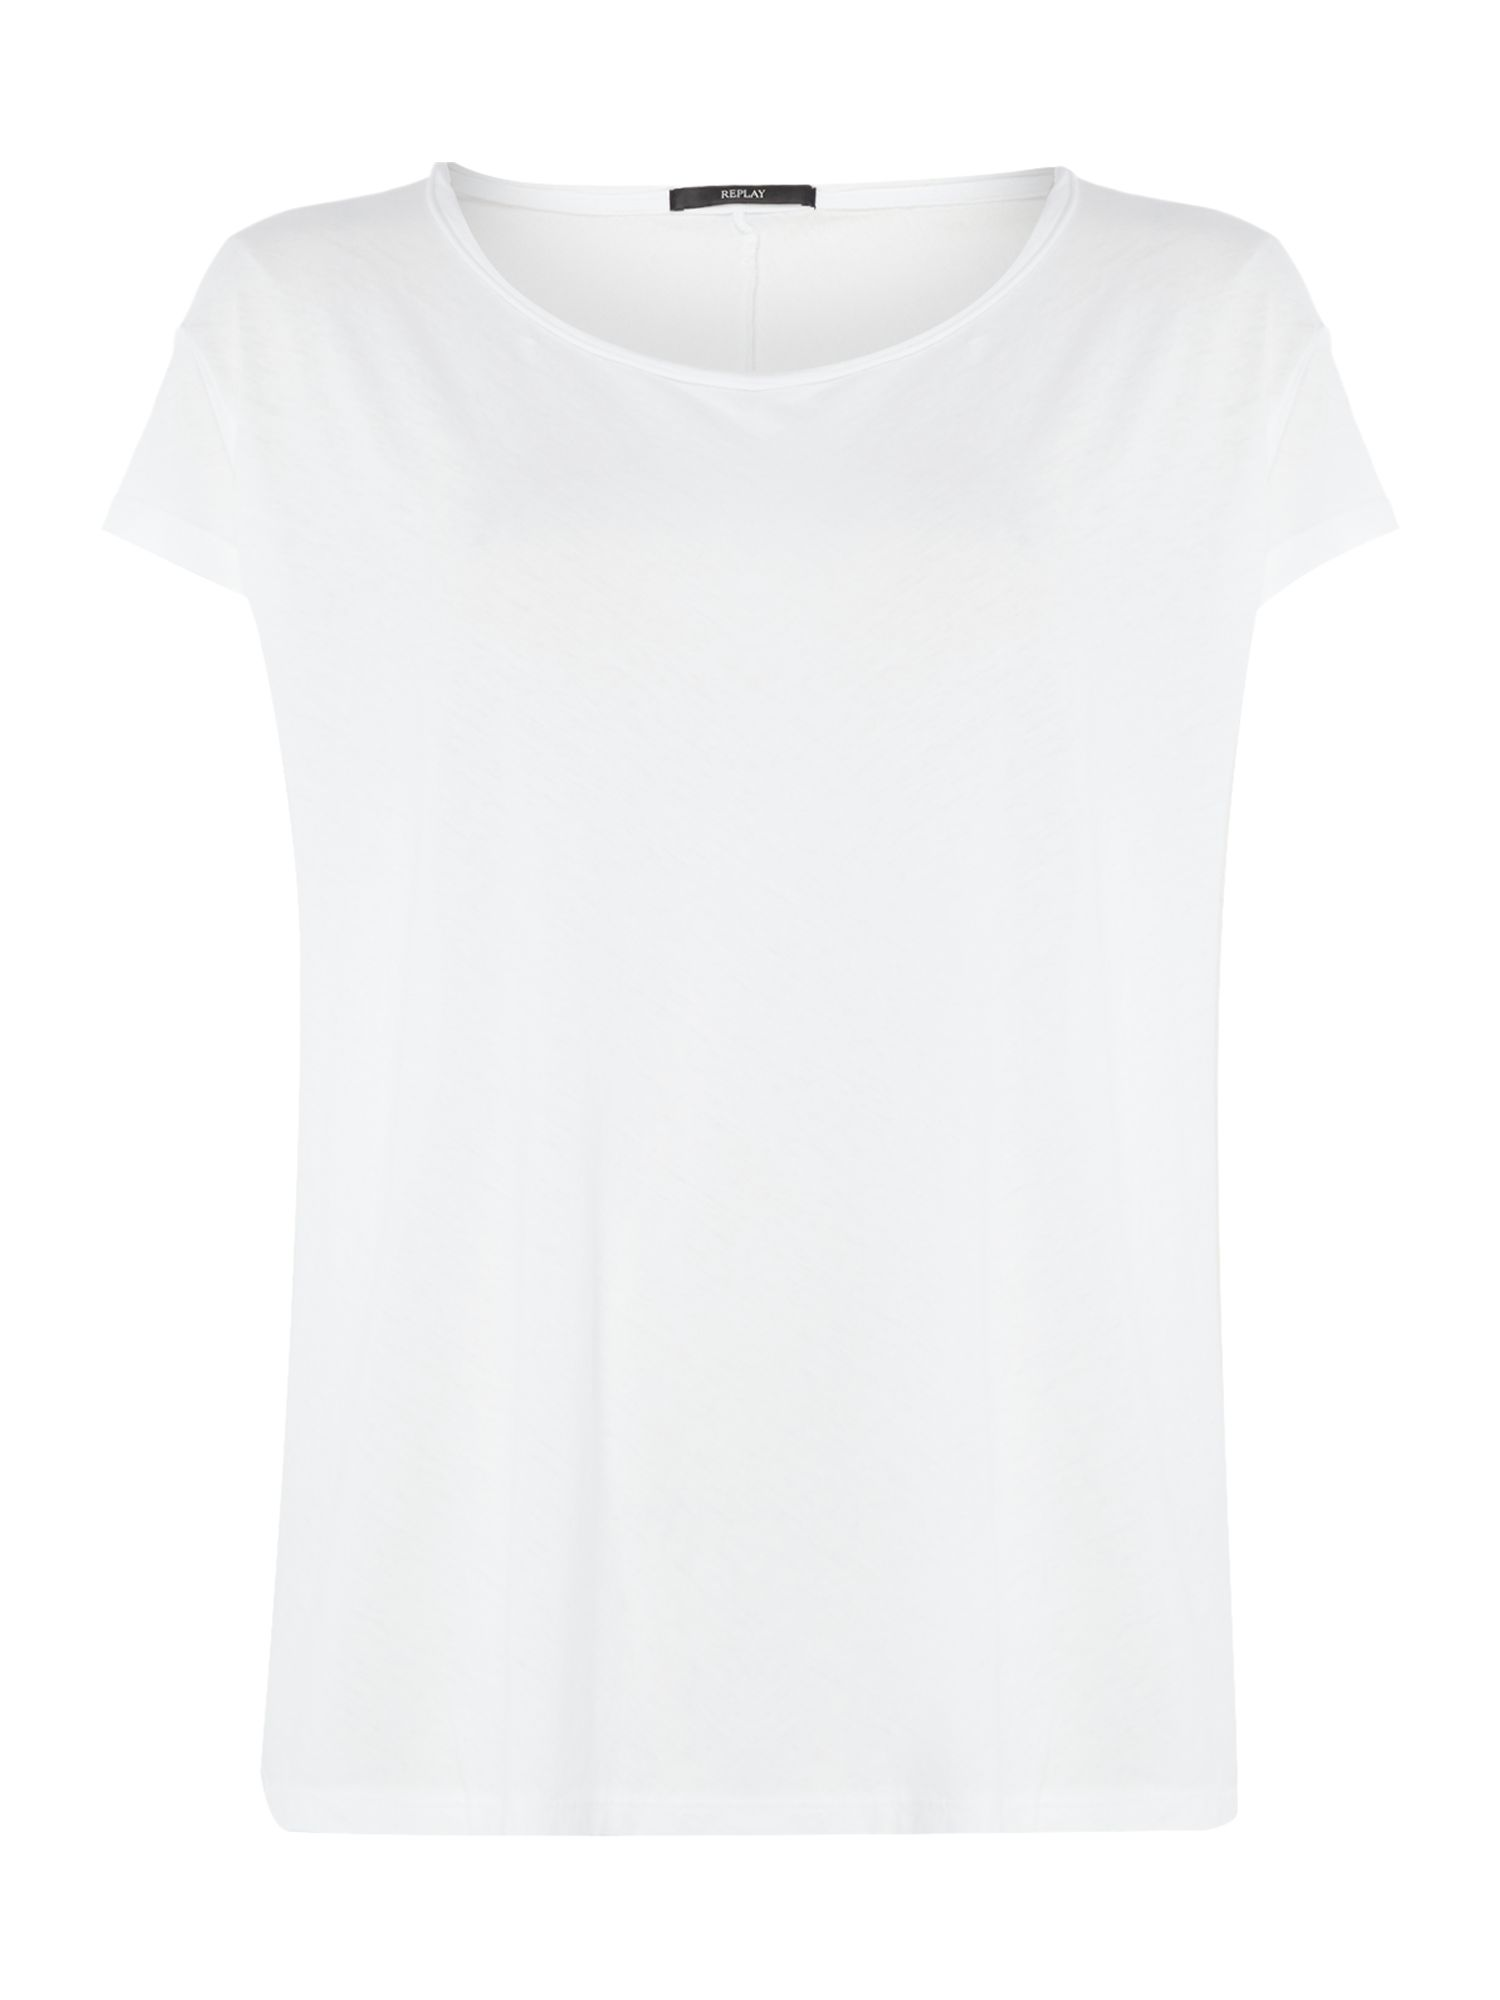 Replay Comfort-fit jersey T-shirt, White